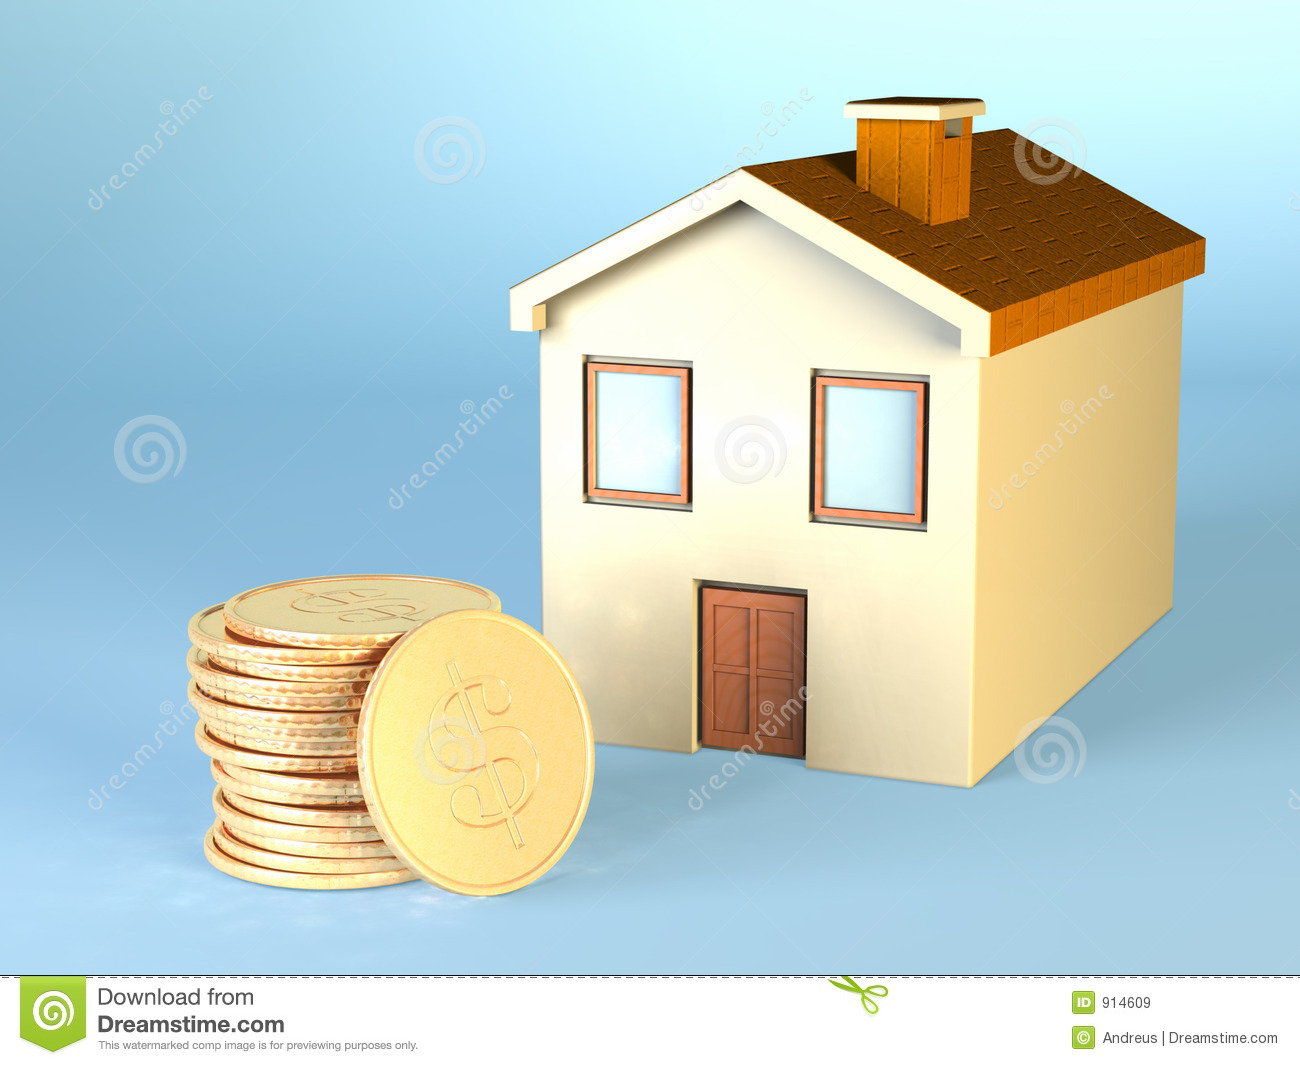 Home Expenses Royalty Free Stock Images - Image: 914609